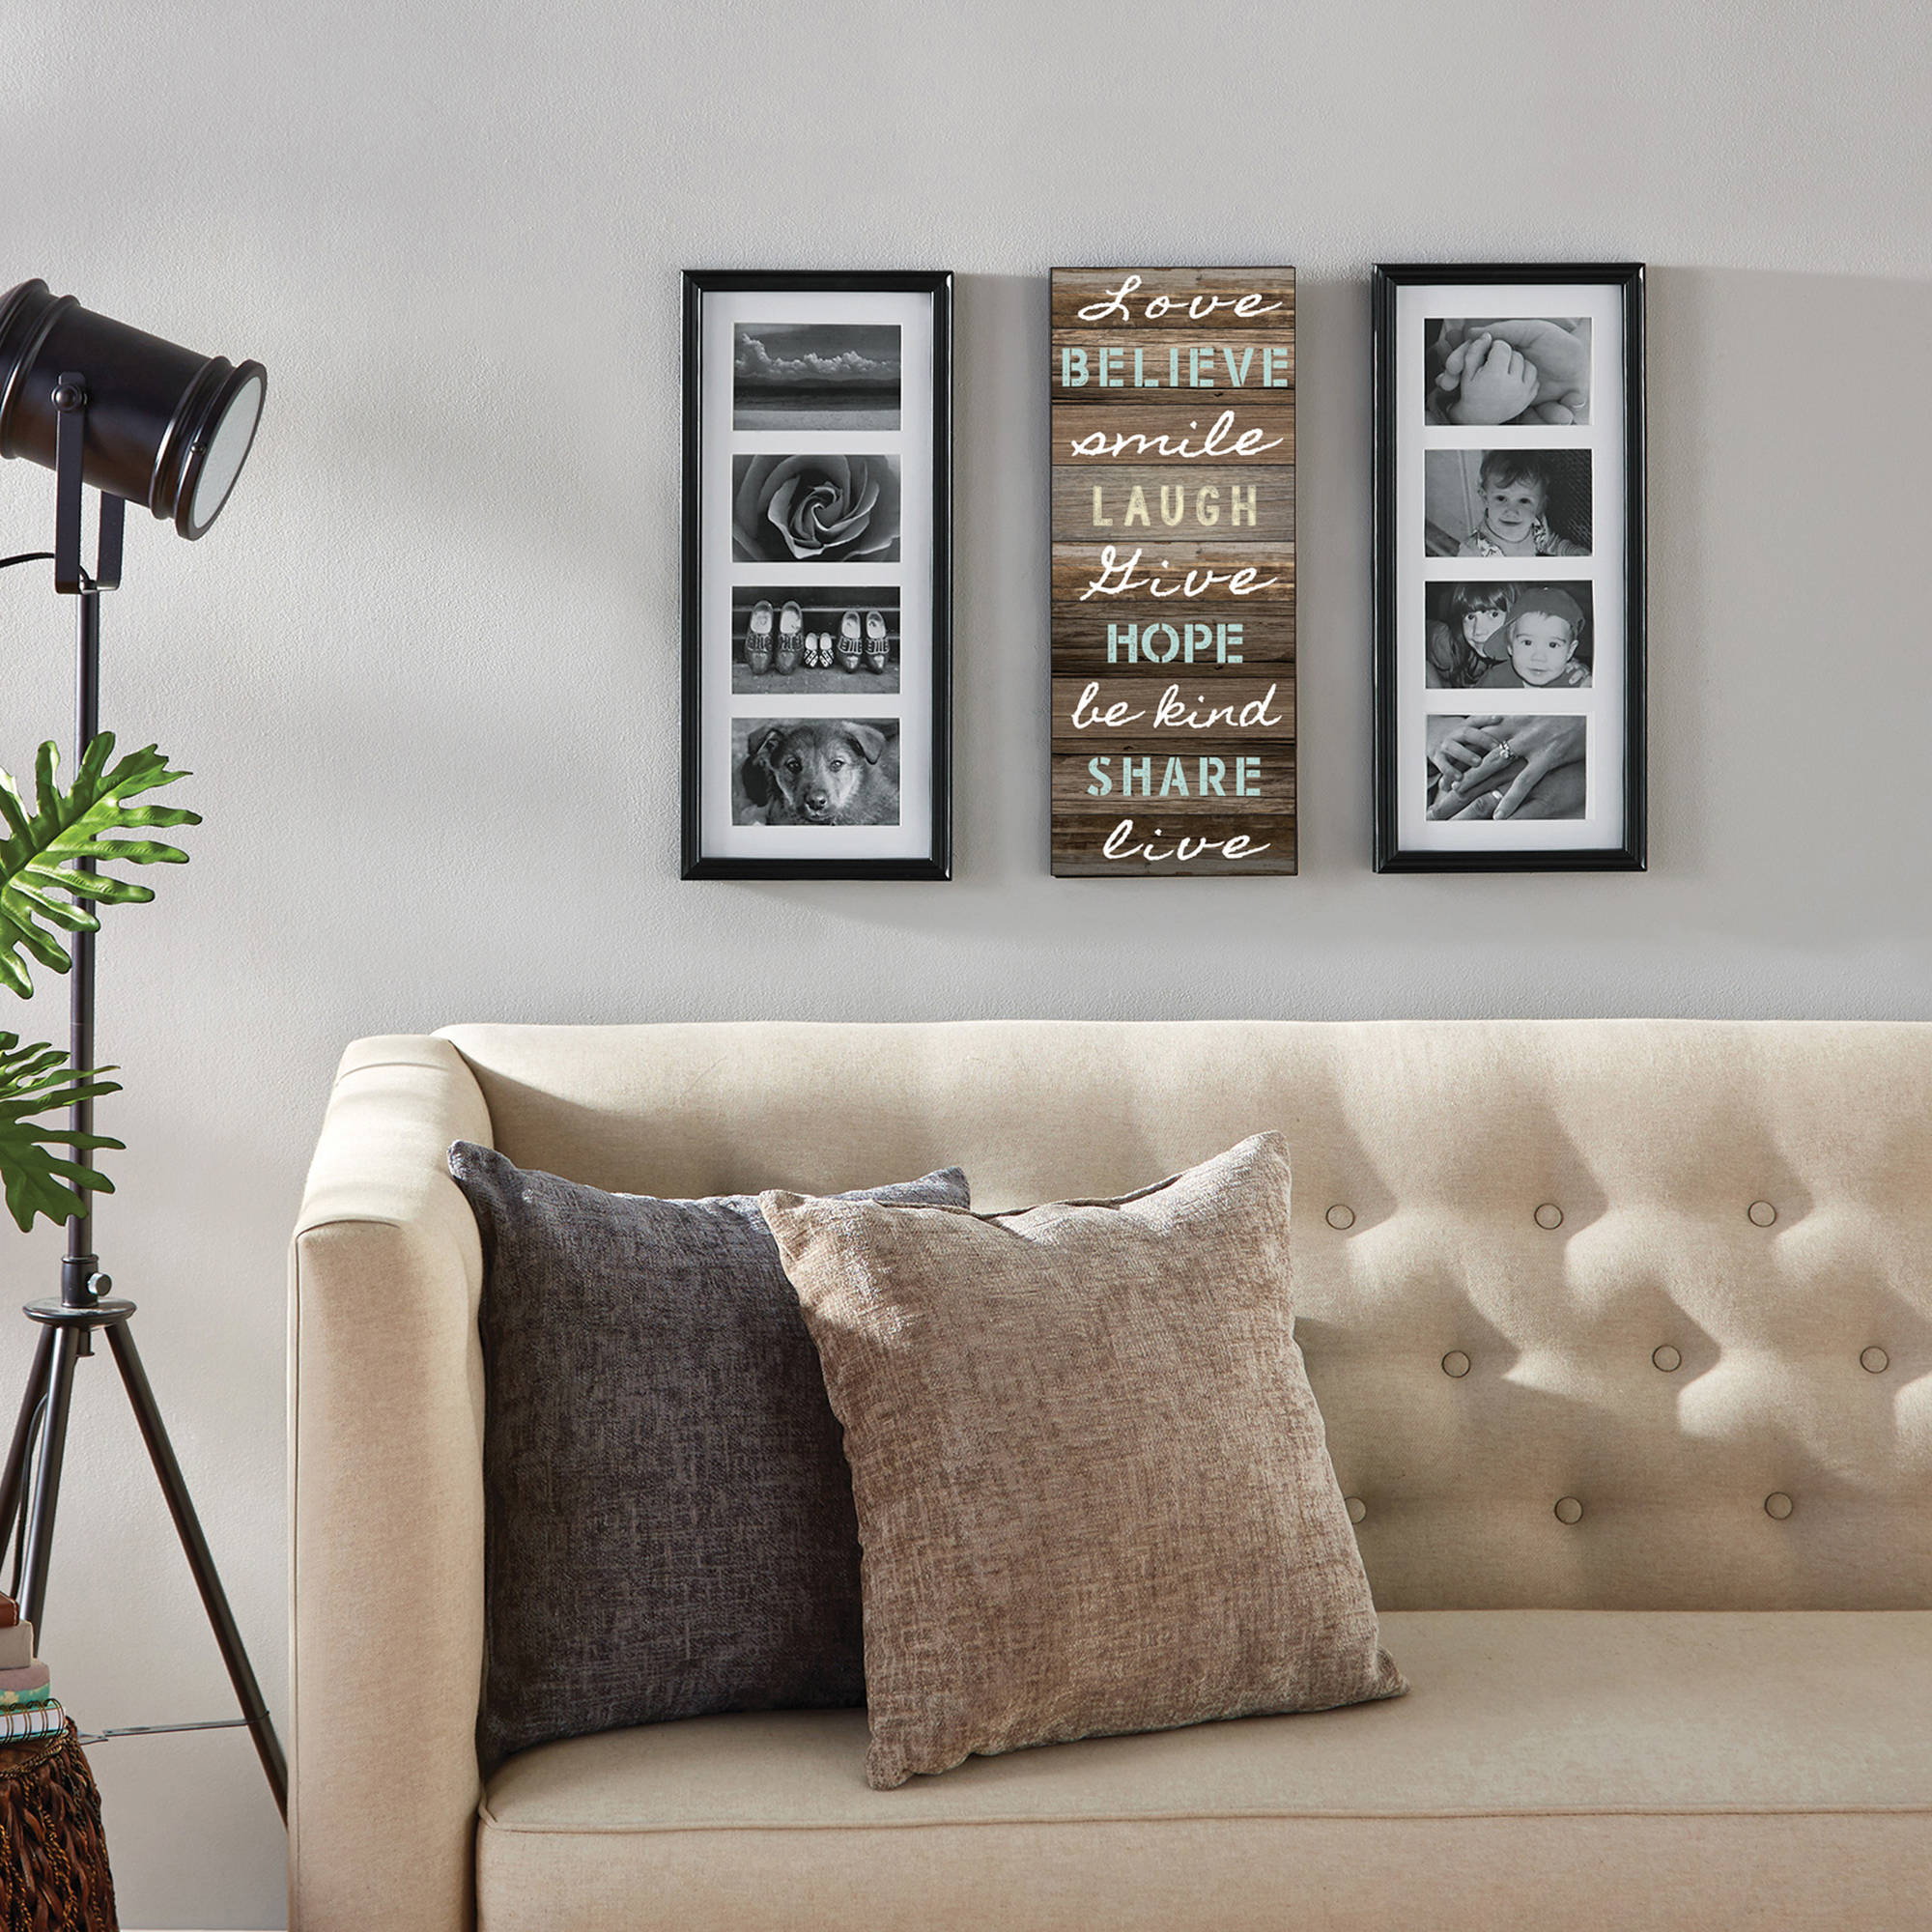 Mainstays 8 Opening Sentiment Picture Frames, Set Of 3, Black Pertaining To Live Love Laugh 3 Piece Black Wall Decor Sets (View 16 of 30)